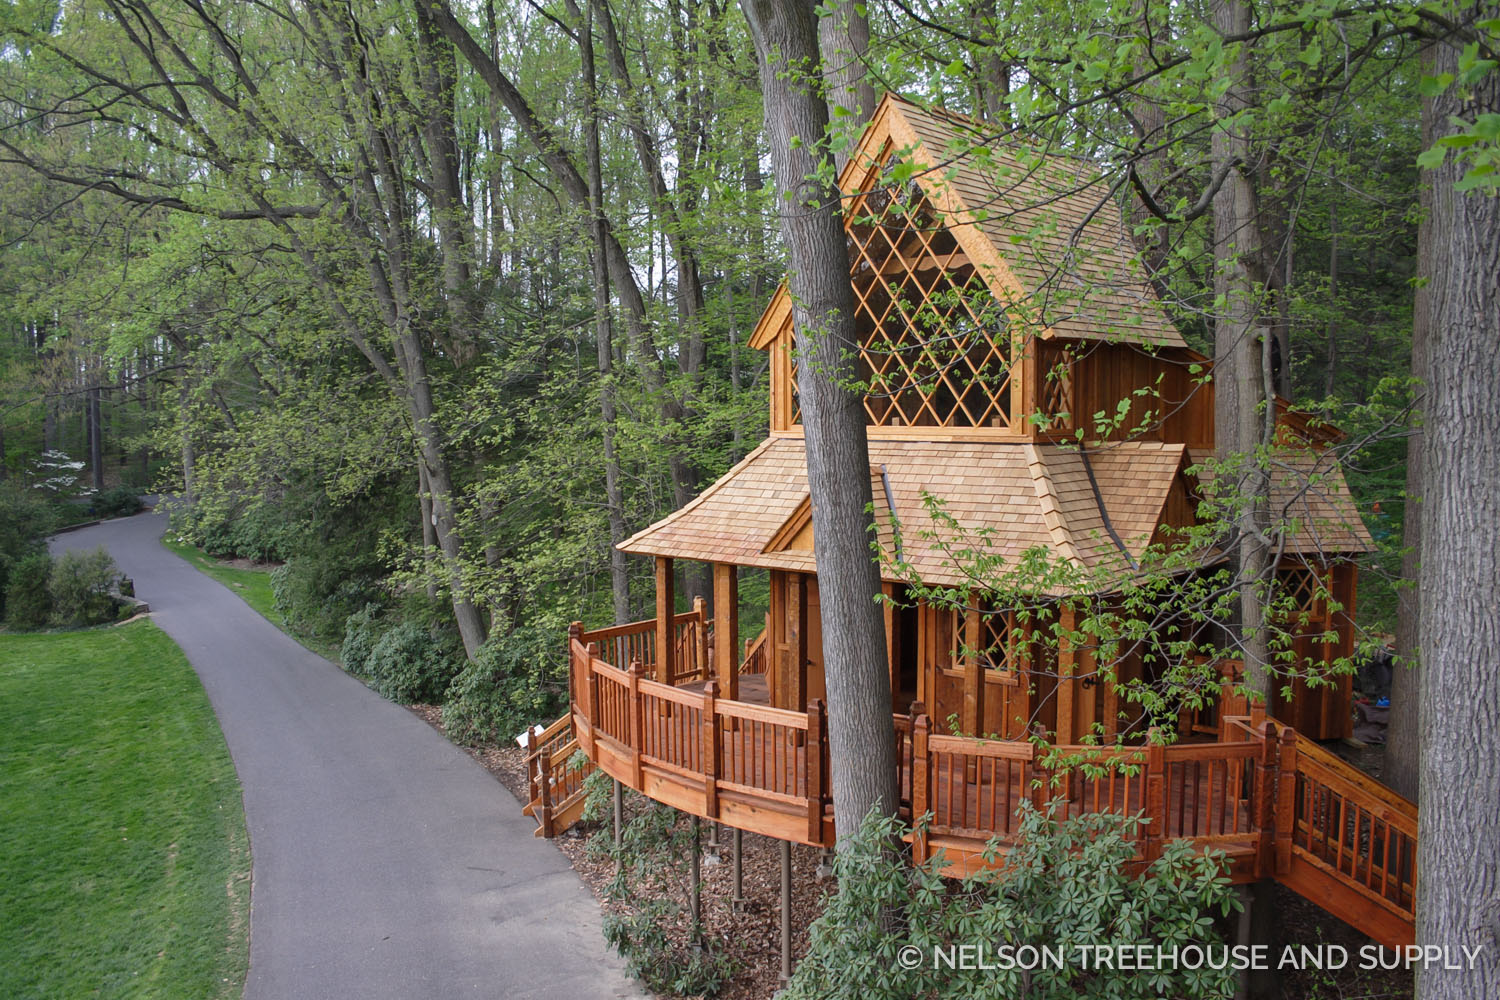 Chuck's first NT&S job was at the Longwood Gardens treehouse in Pennsylvania.